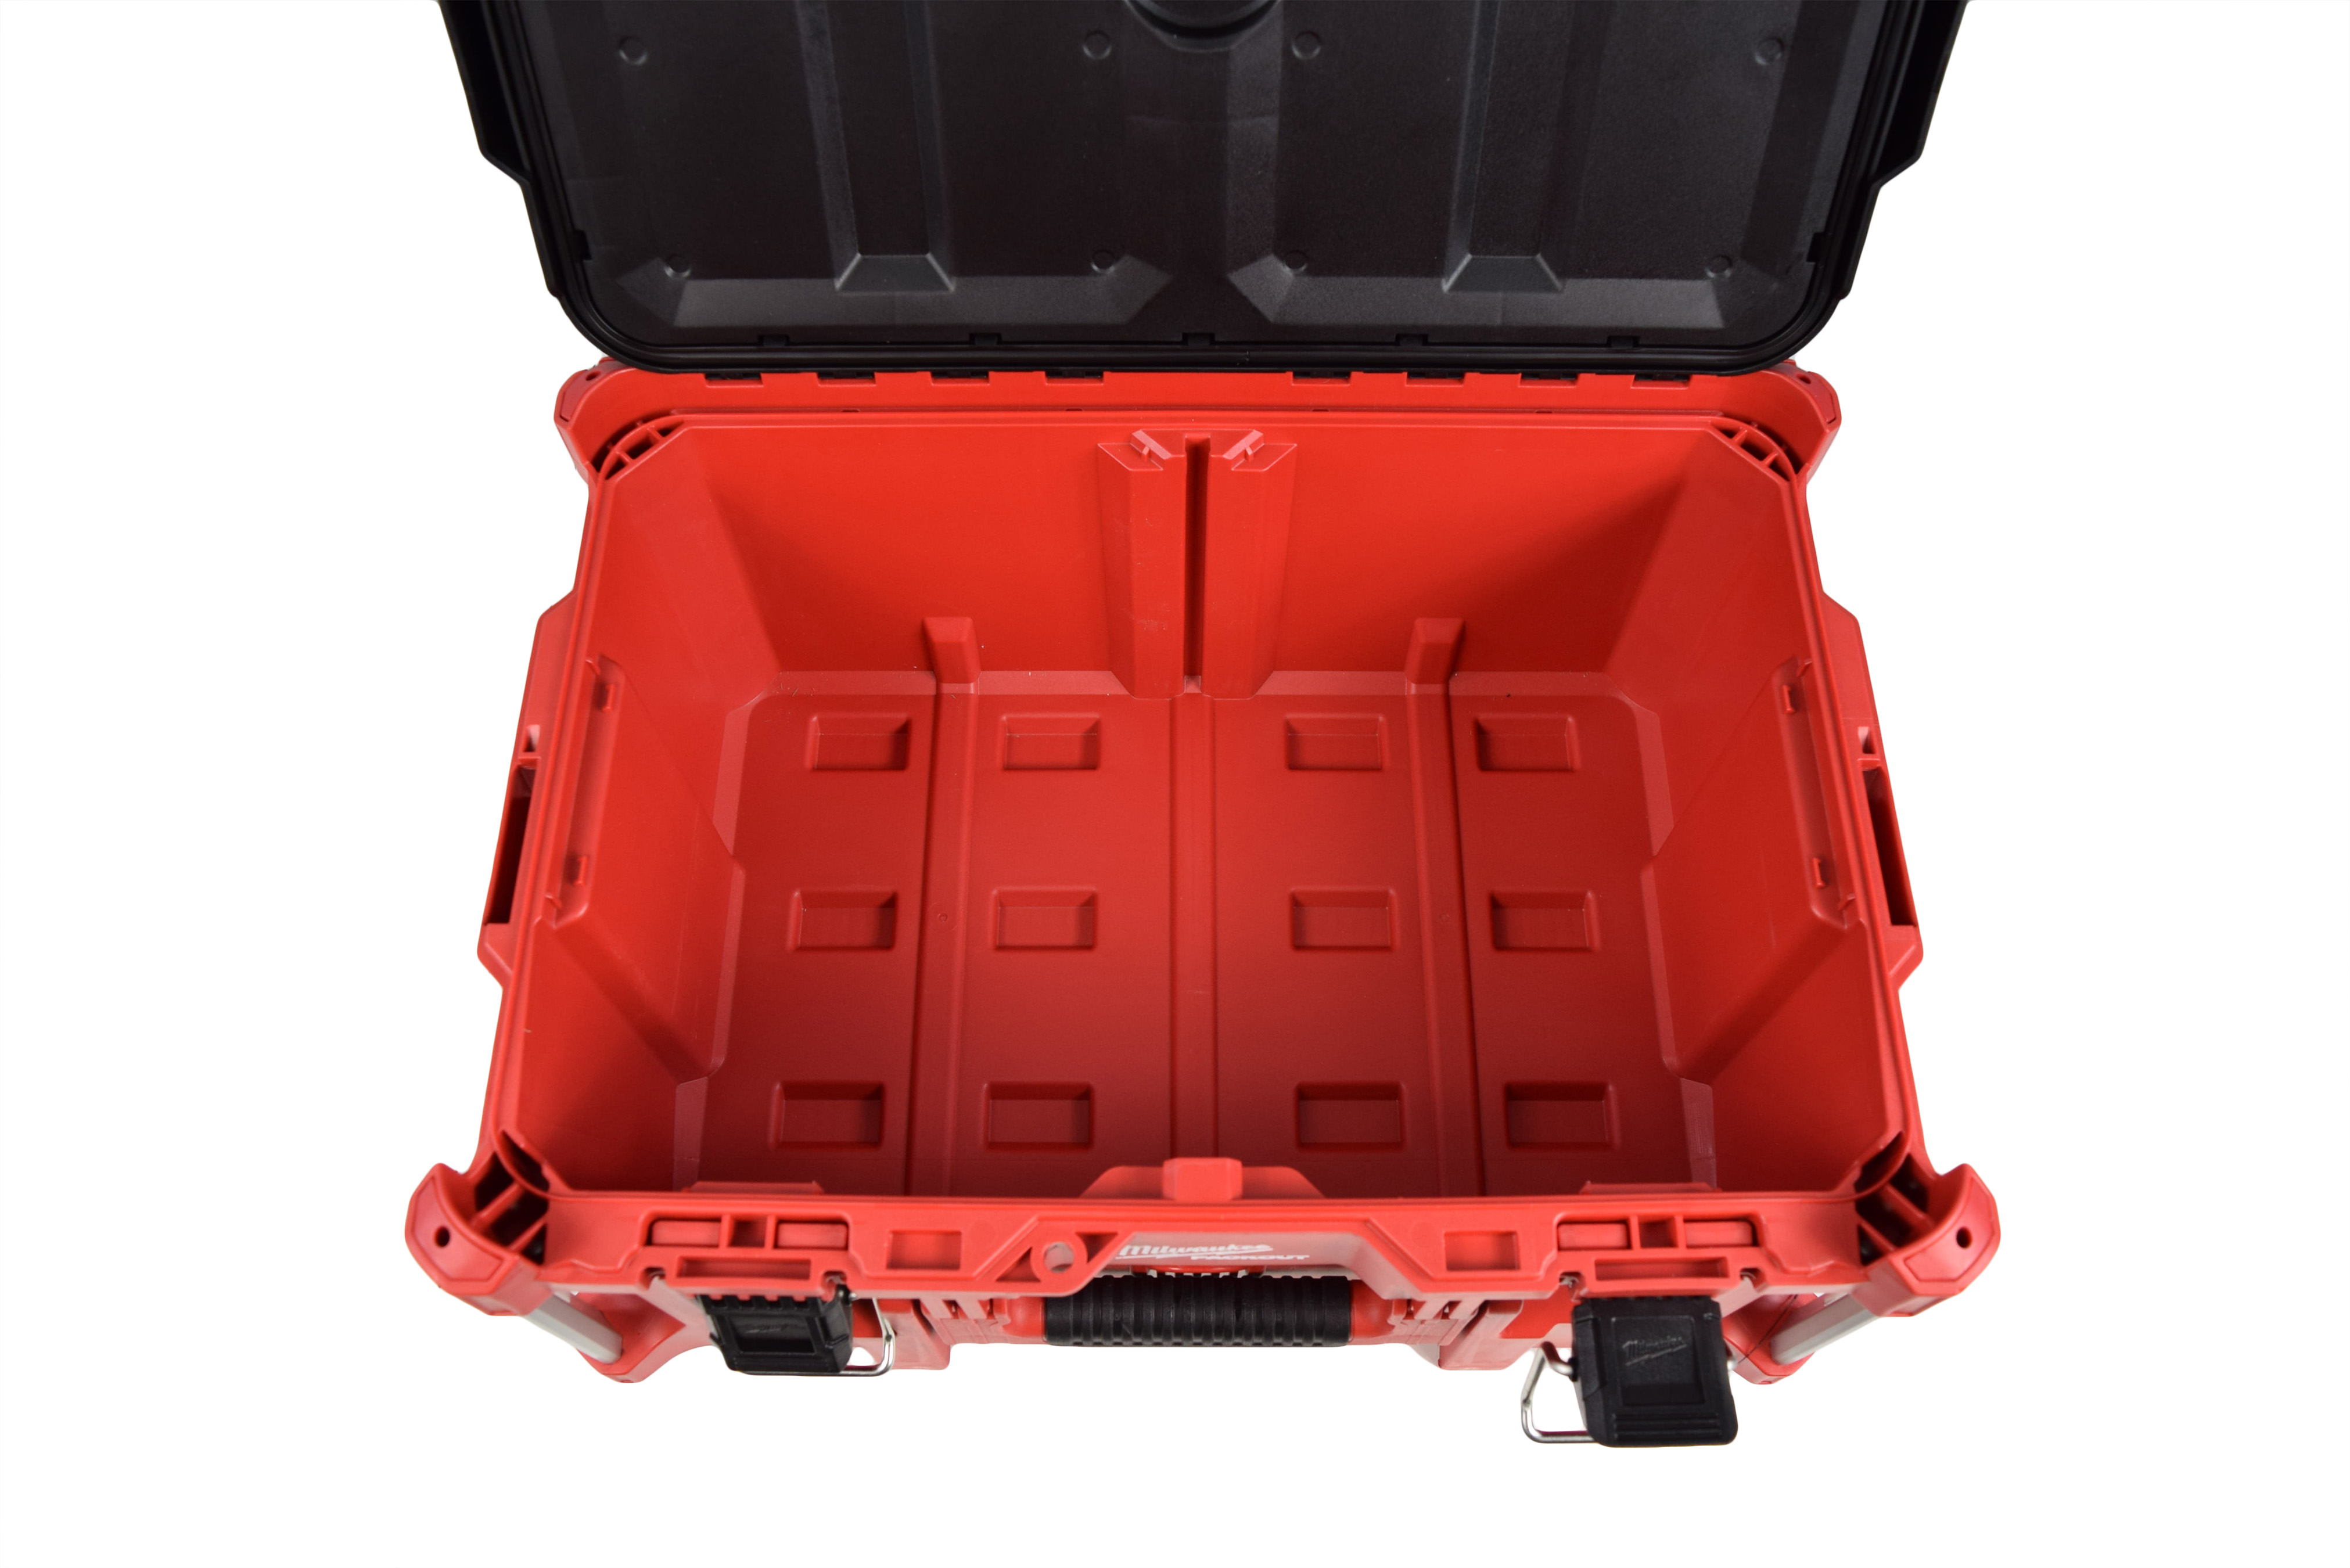 Milwaukee-48-22-8425-Packout-22-in.-Large-Tool-Box-Tool-Case-image-4